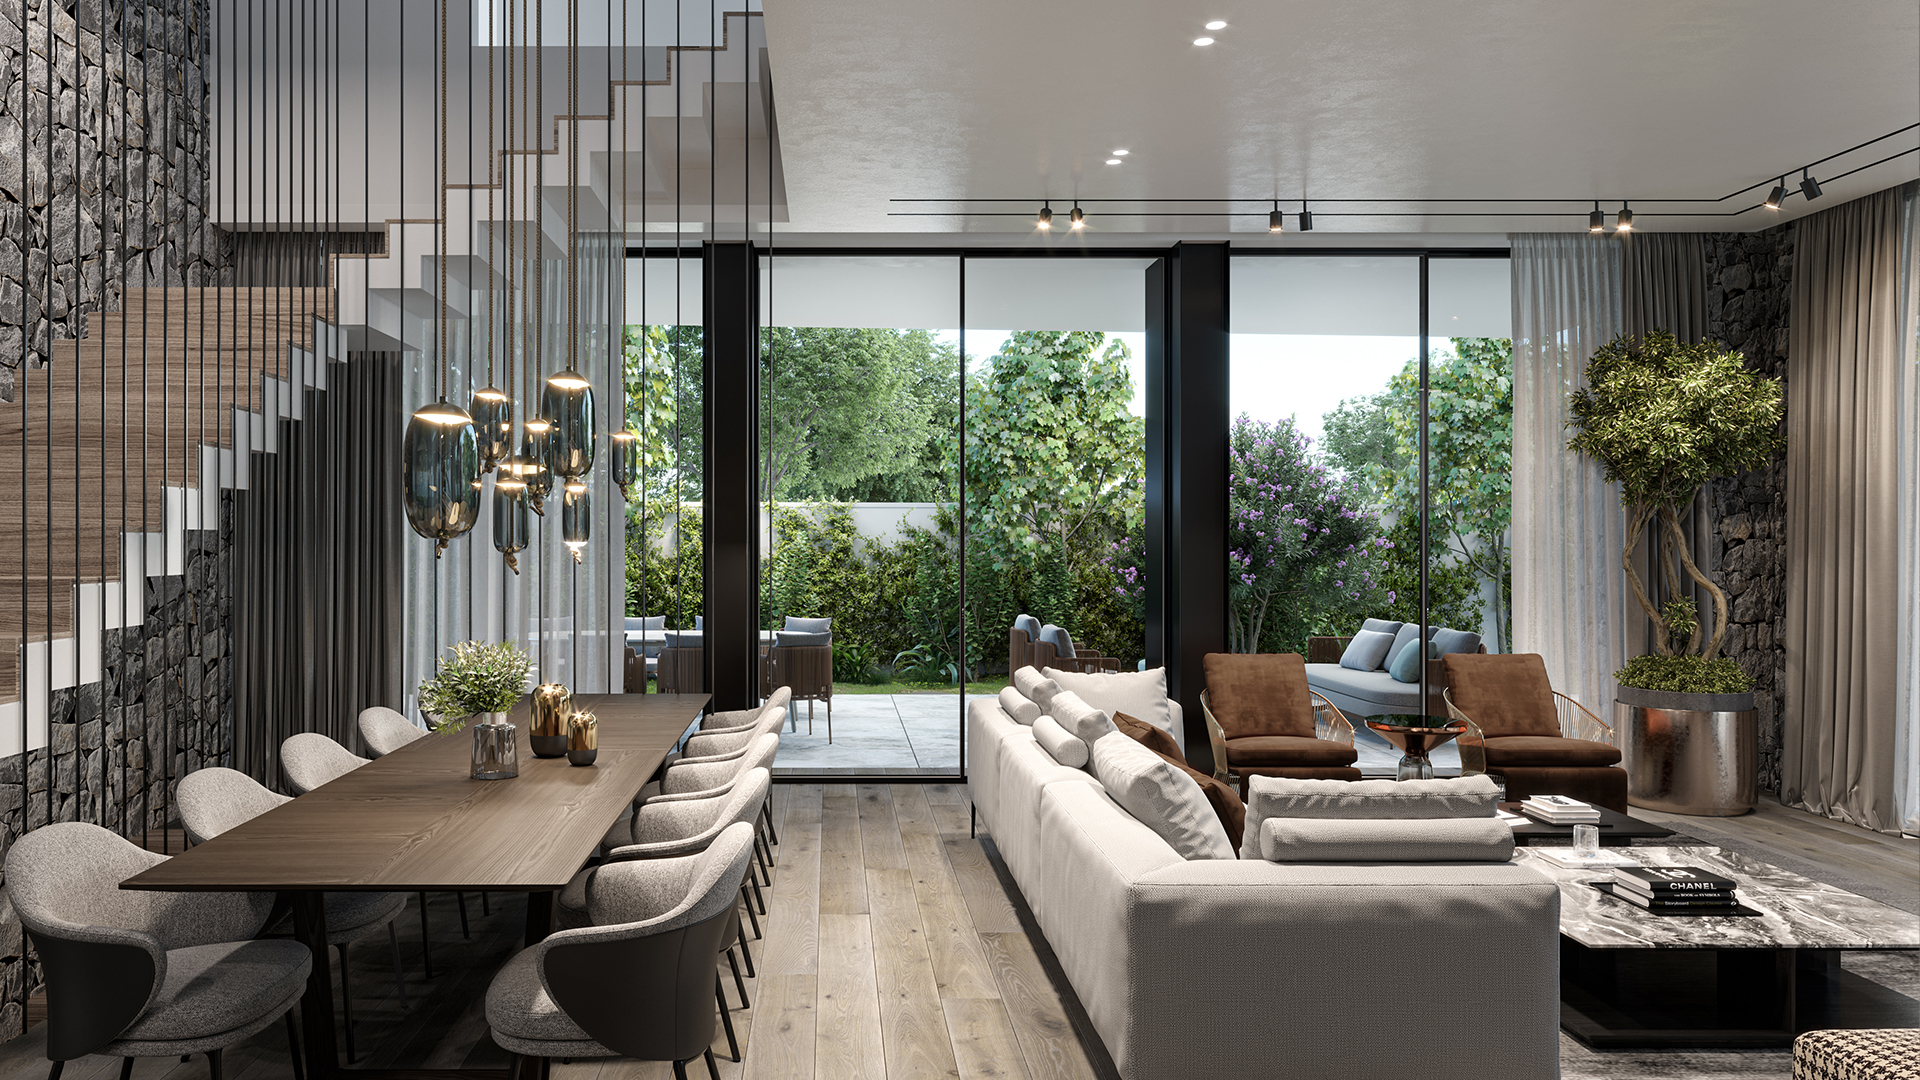 Maayan-Golan_Architectural-Visualization_interior-render_private-residential_living-room_interior-design-by-sharon-maayan_04